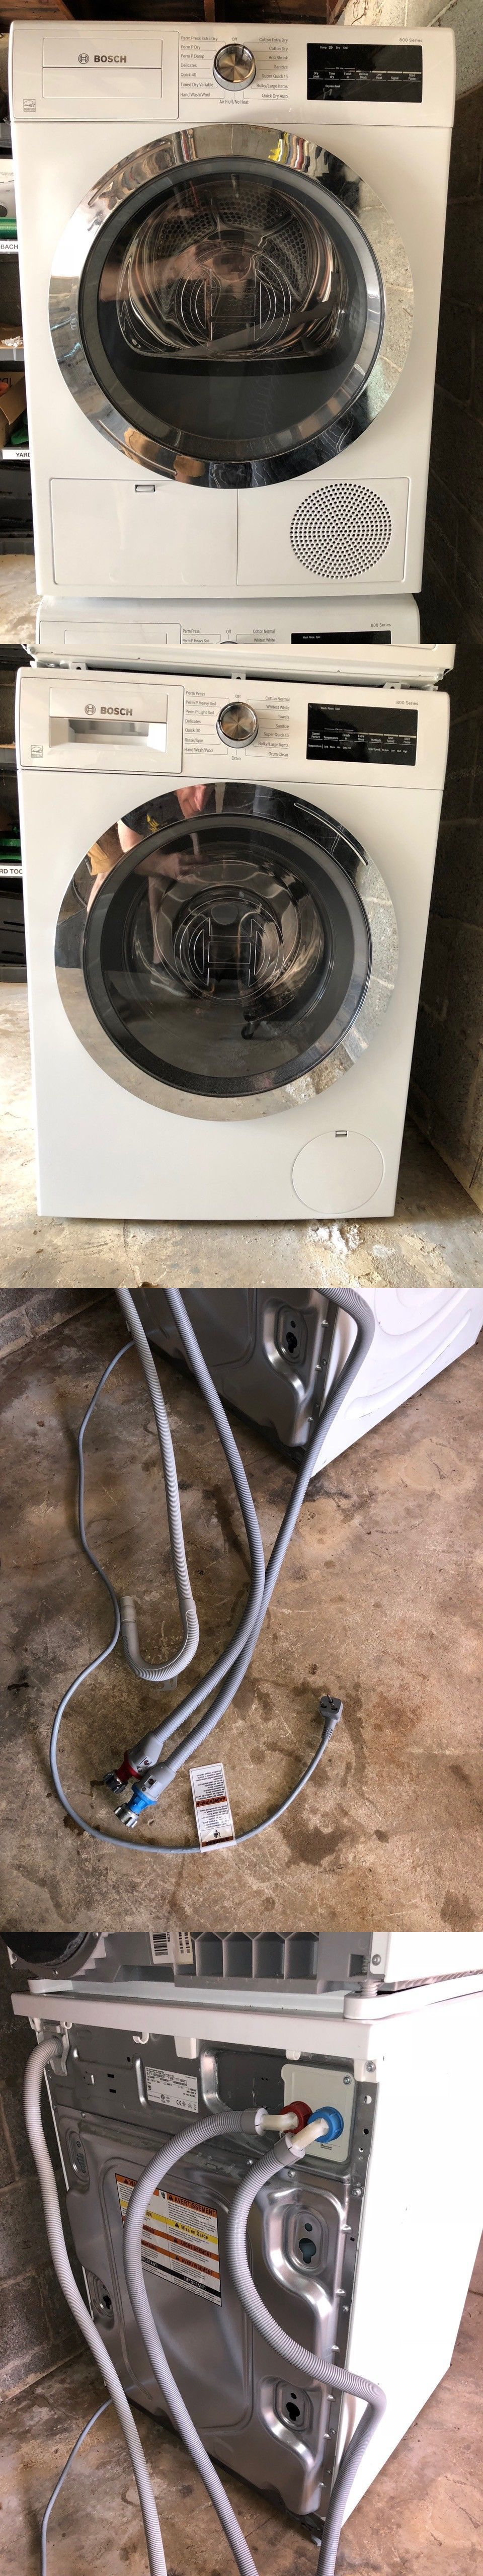 Washer Dryer Combinations And Sets 71257 Bosch 800 Series Washer Dryer Set Stacking Kit Wat28402u Washer Dryer Set Combination Washer Dryer Washer And Dryer